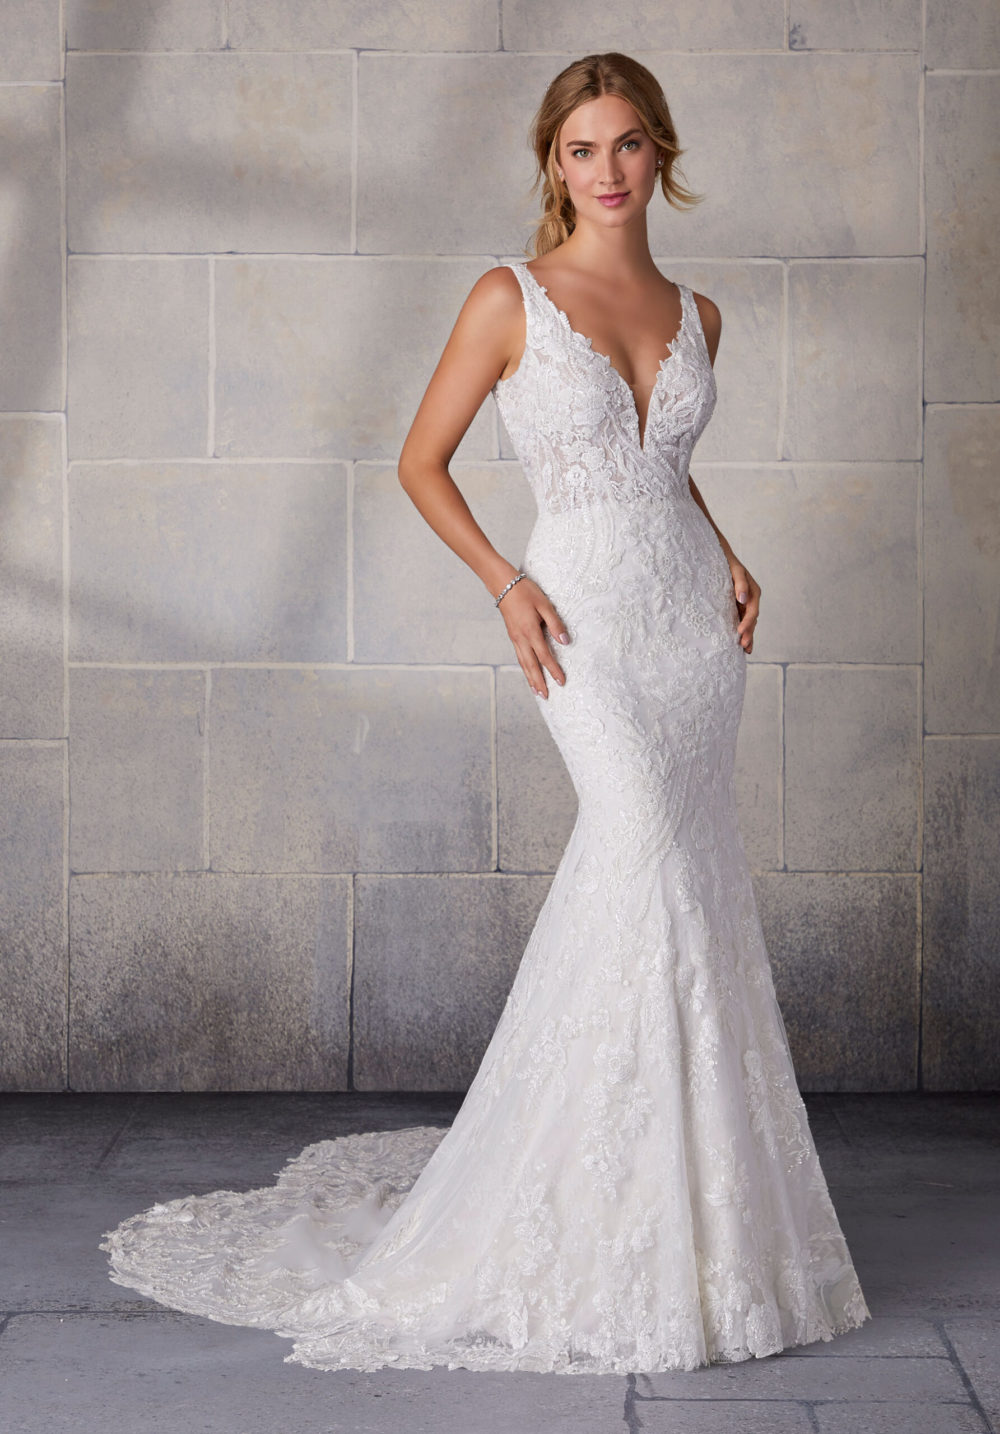 Morilee Wedding Gown Dress style 2123